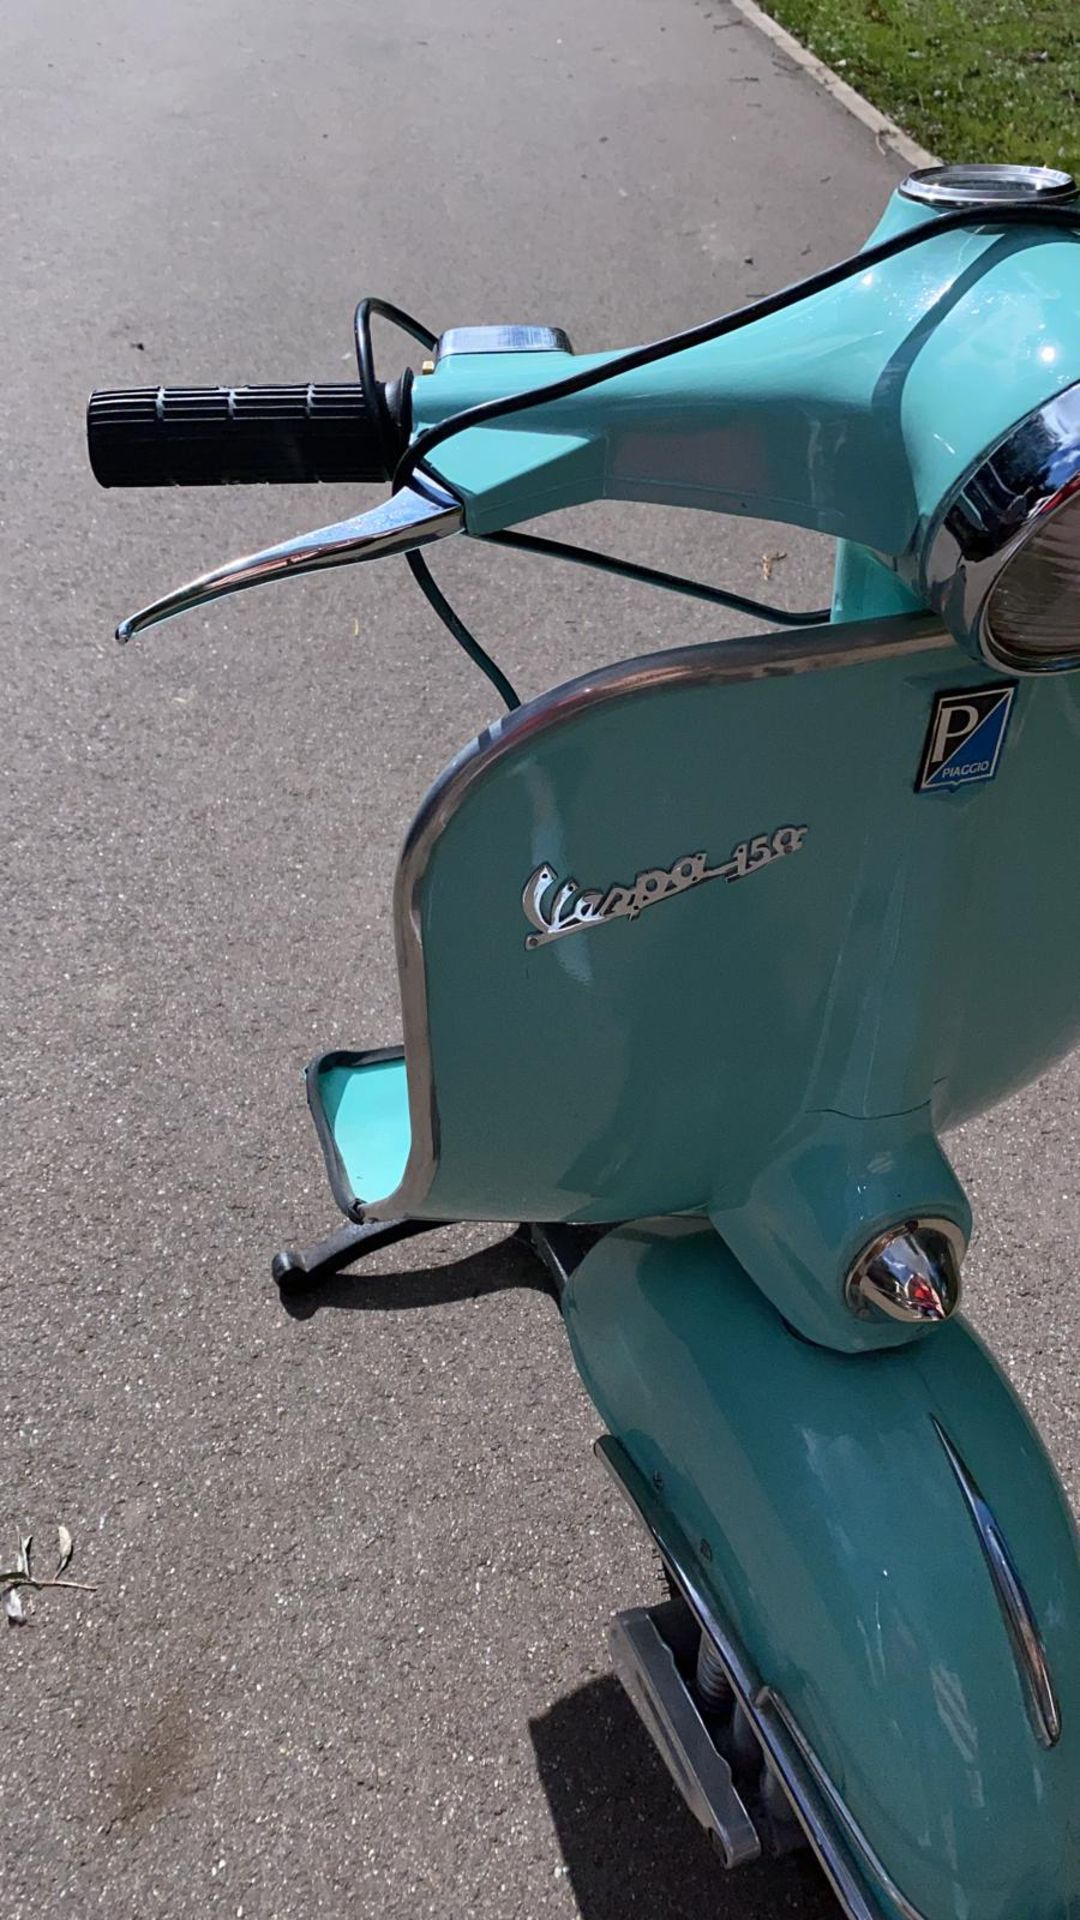 PIAGGIO VESPA 150 FRONT LIGHT ON A 3 PIN PLUG THROUGH THE HEADLIGHT *NO VAT* - Image 3 of 8